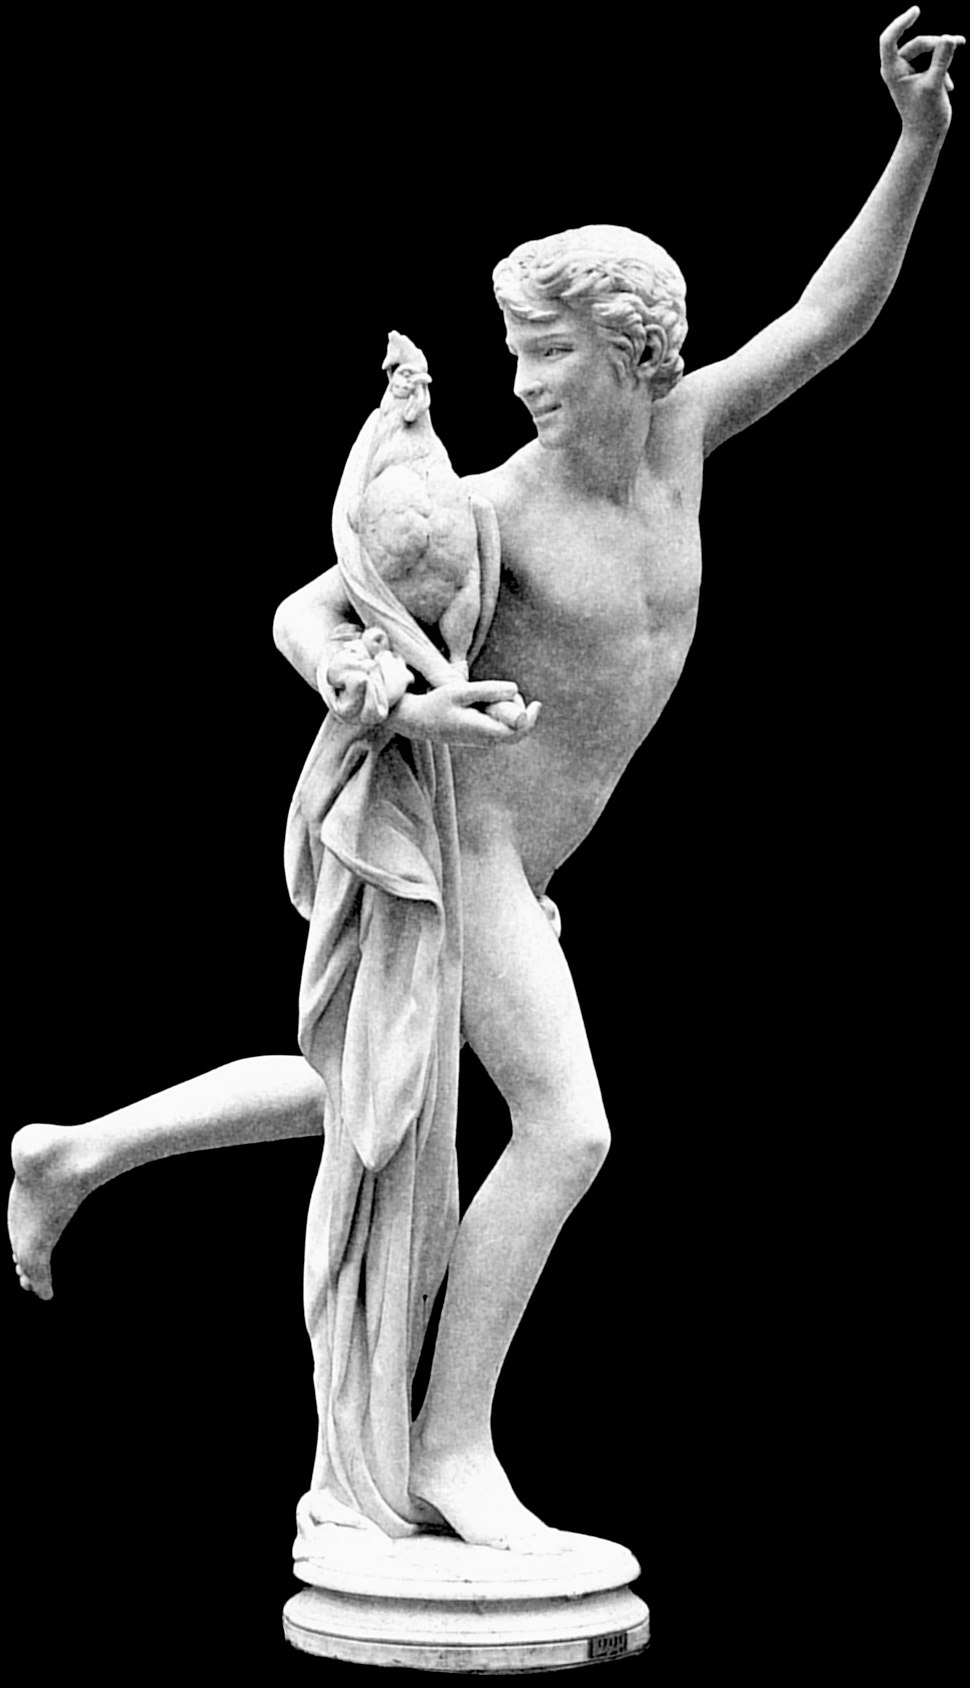 Alexandre falguiere's statue winner of the cockfight version with long drape vbig